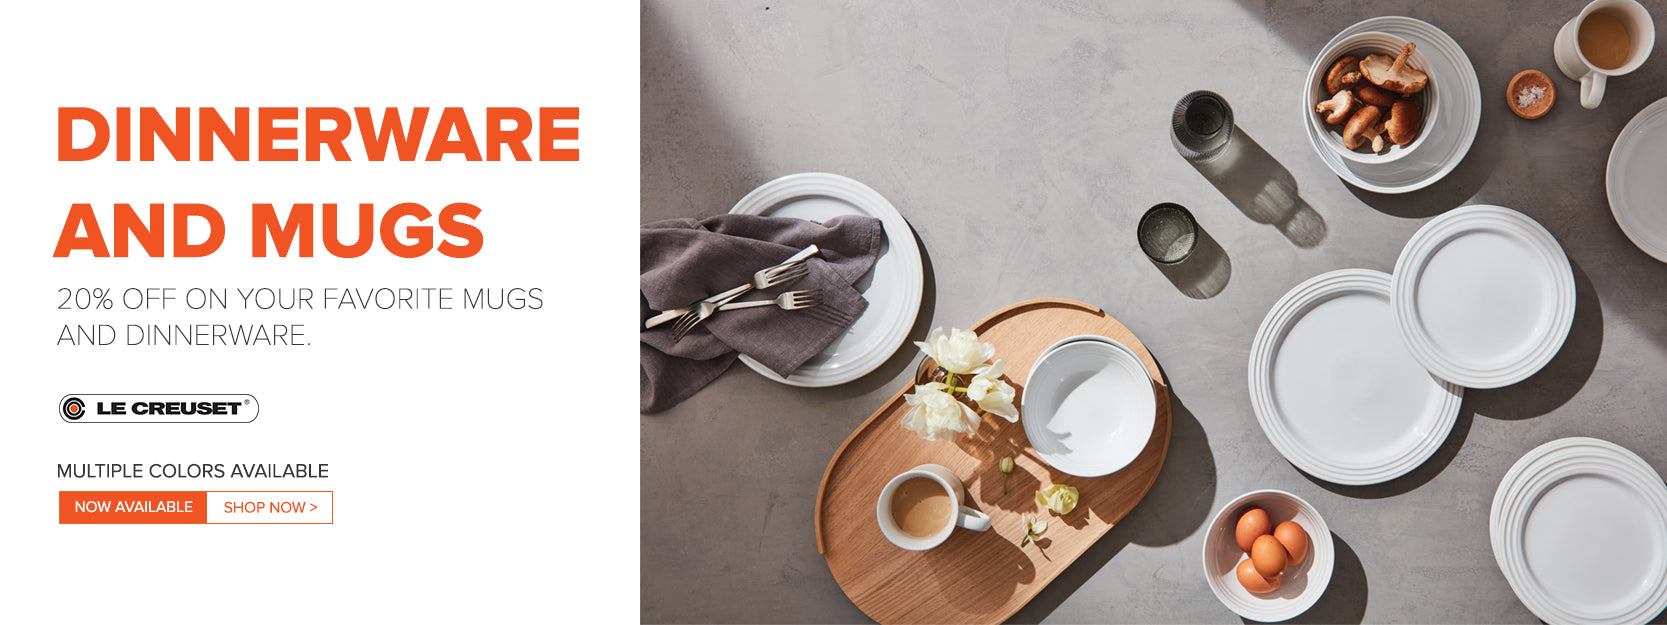 Le Creuset Dinnerware and Mugs Sale